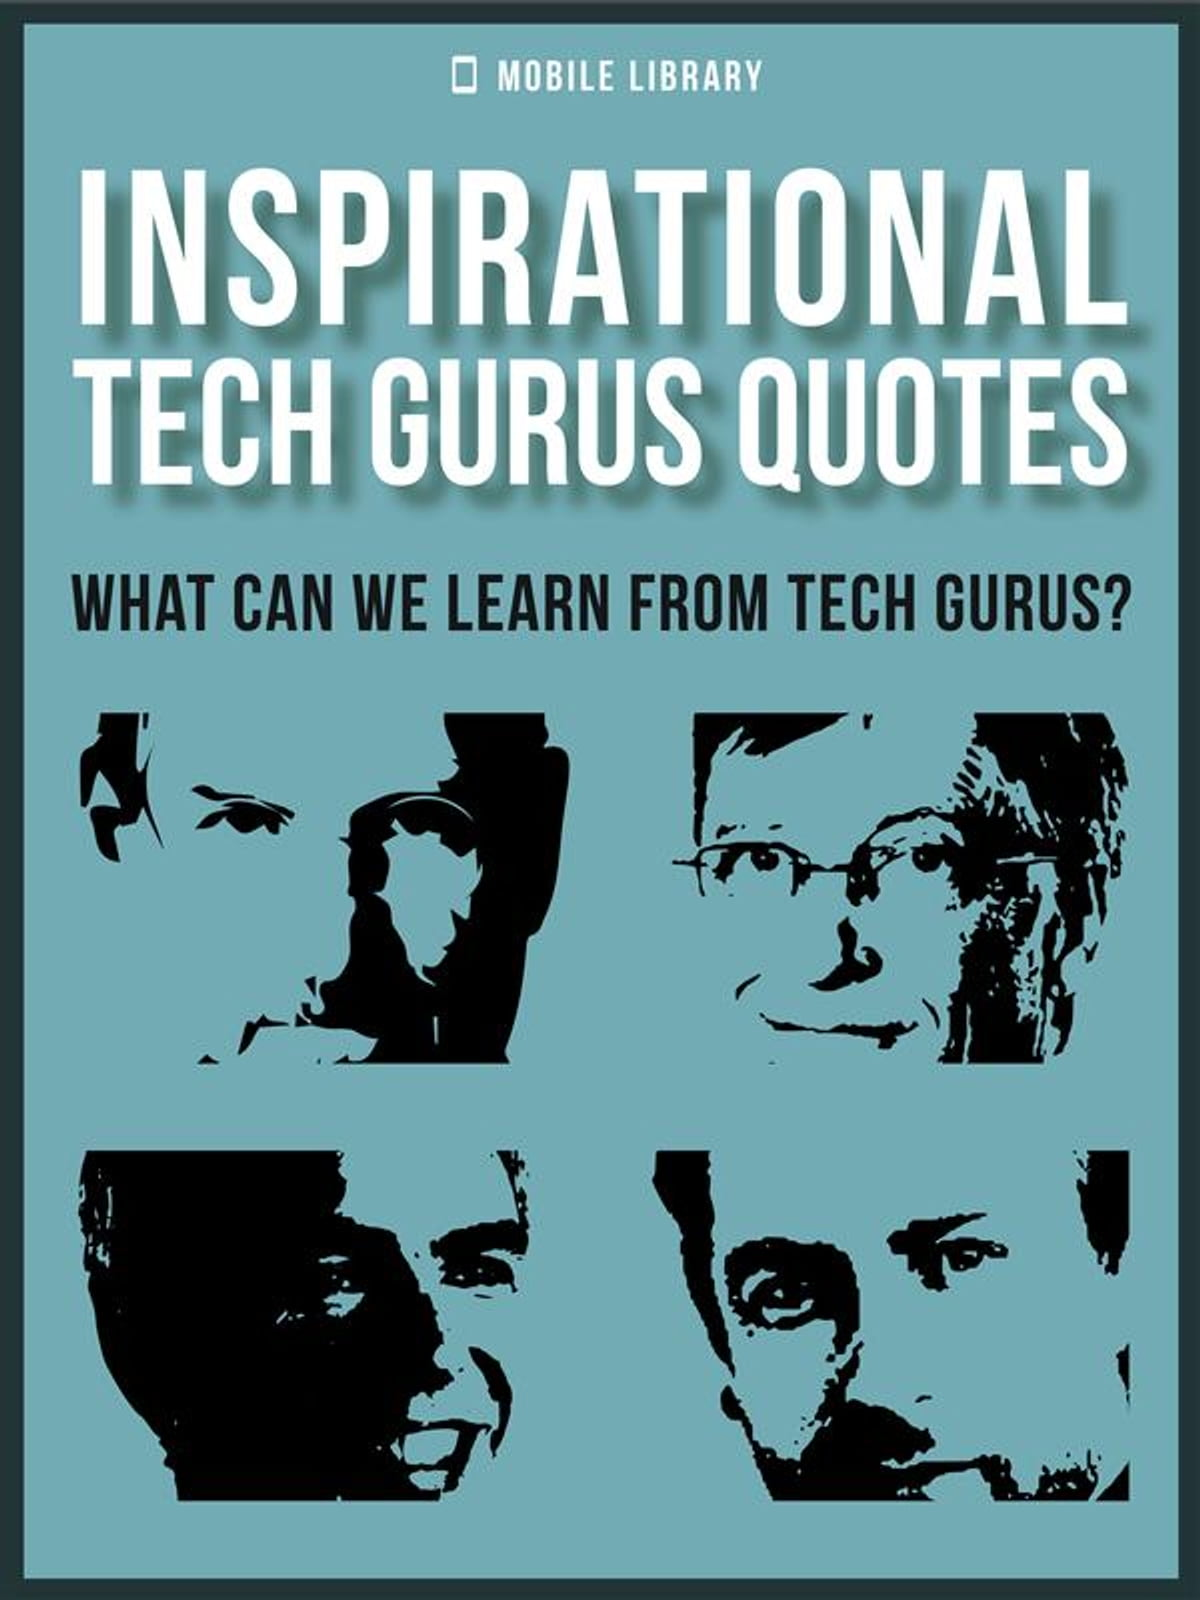 Library Quotes Inspirational Tech Gurus Quotes Ebookmobile Library